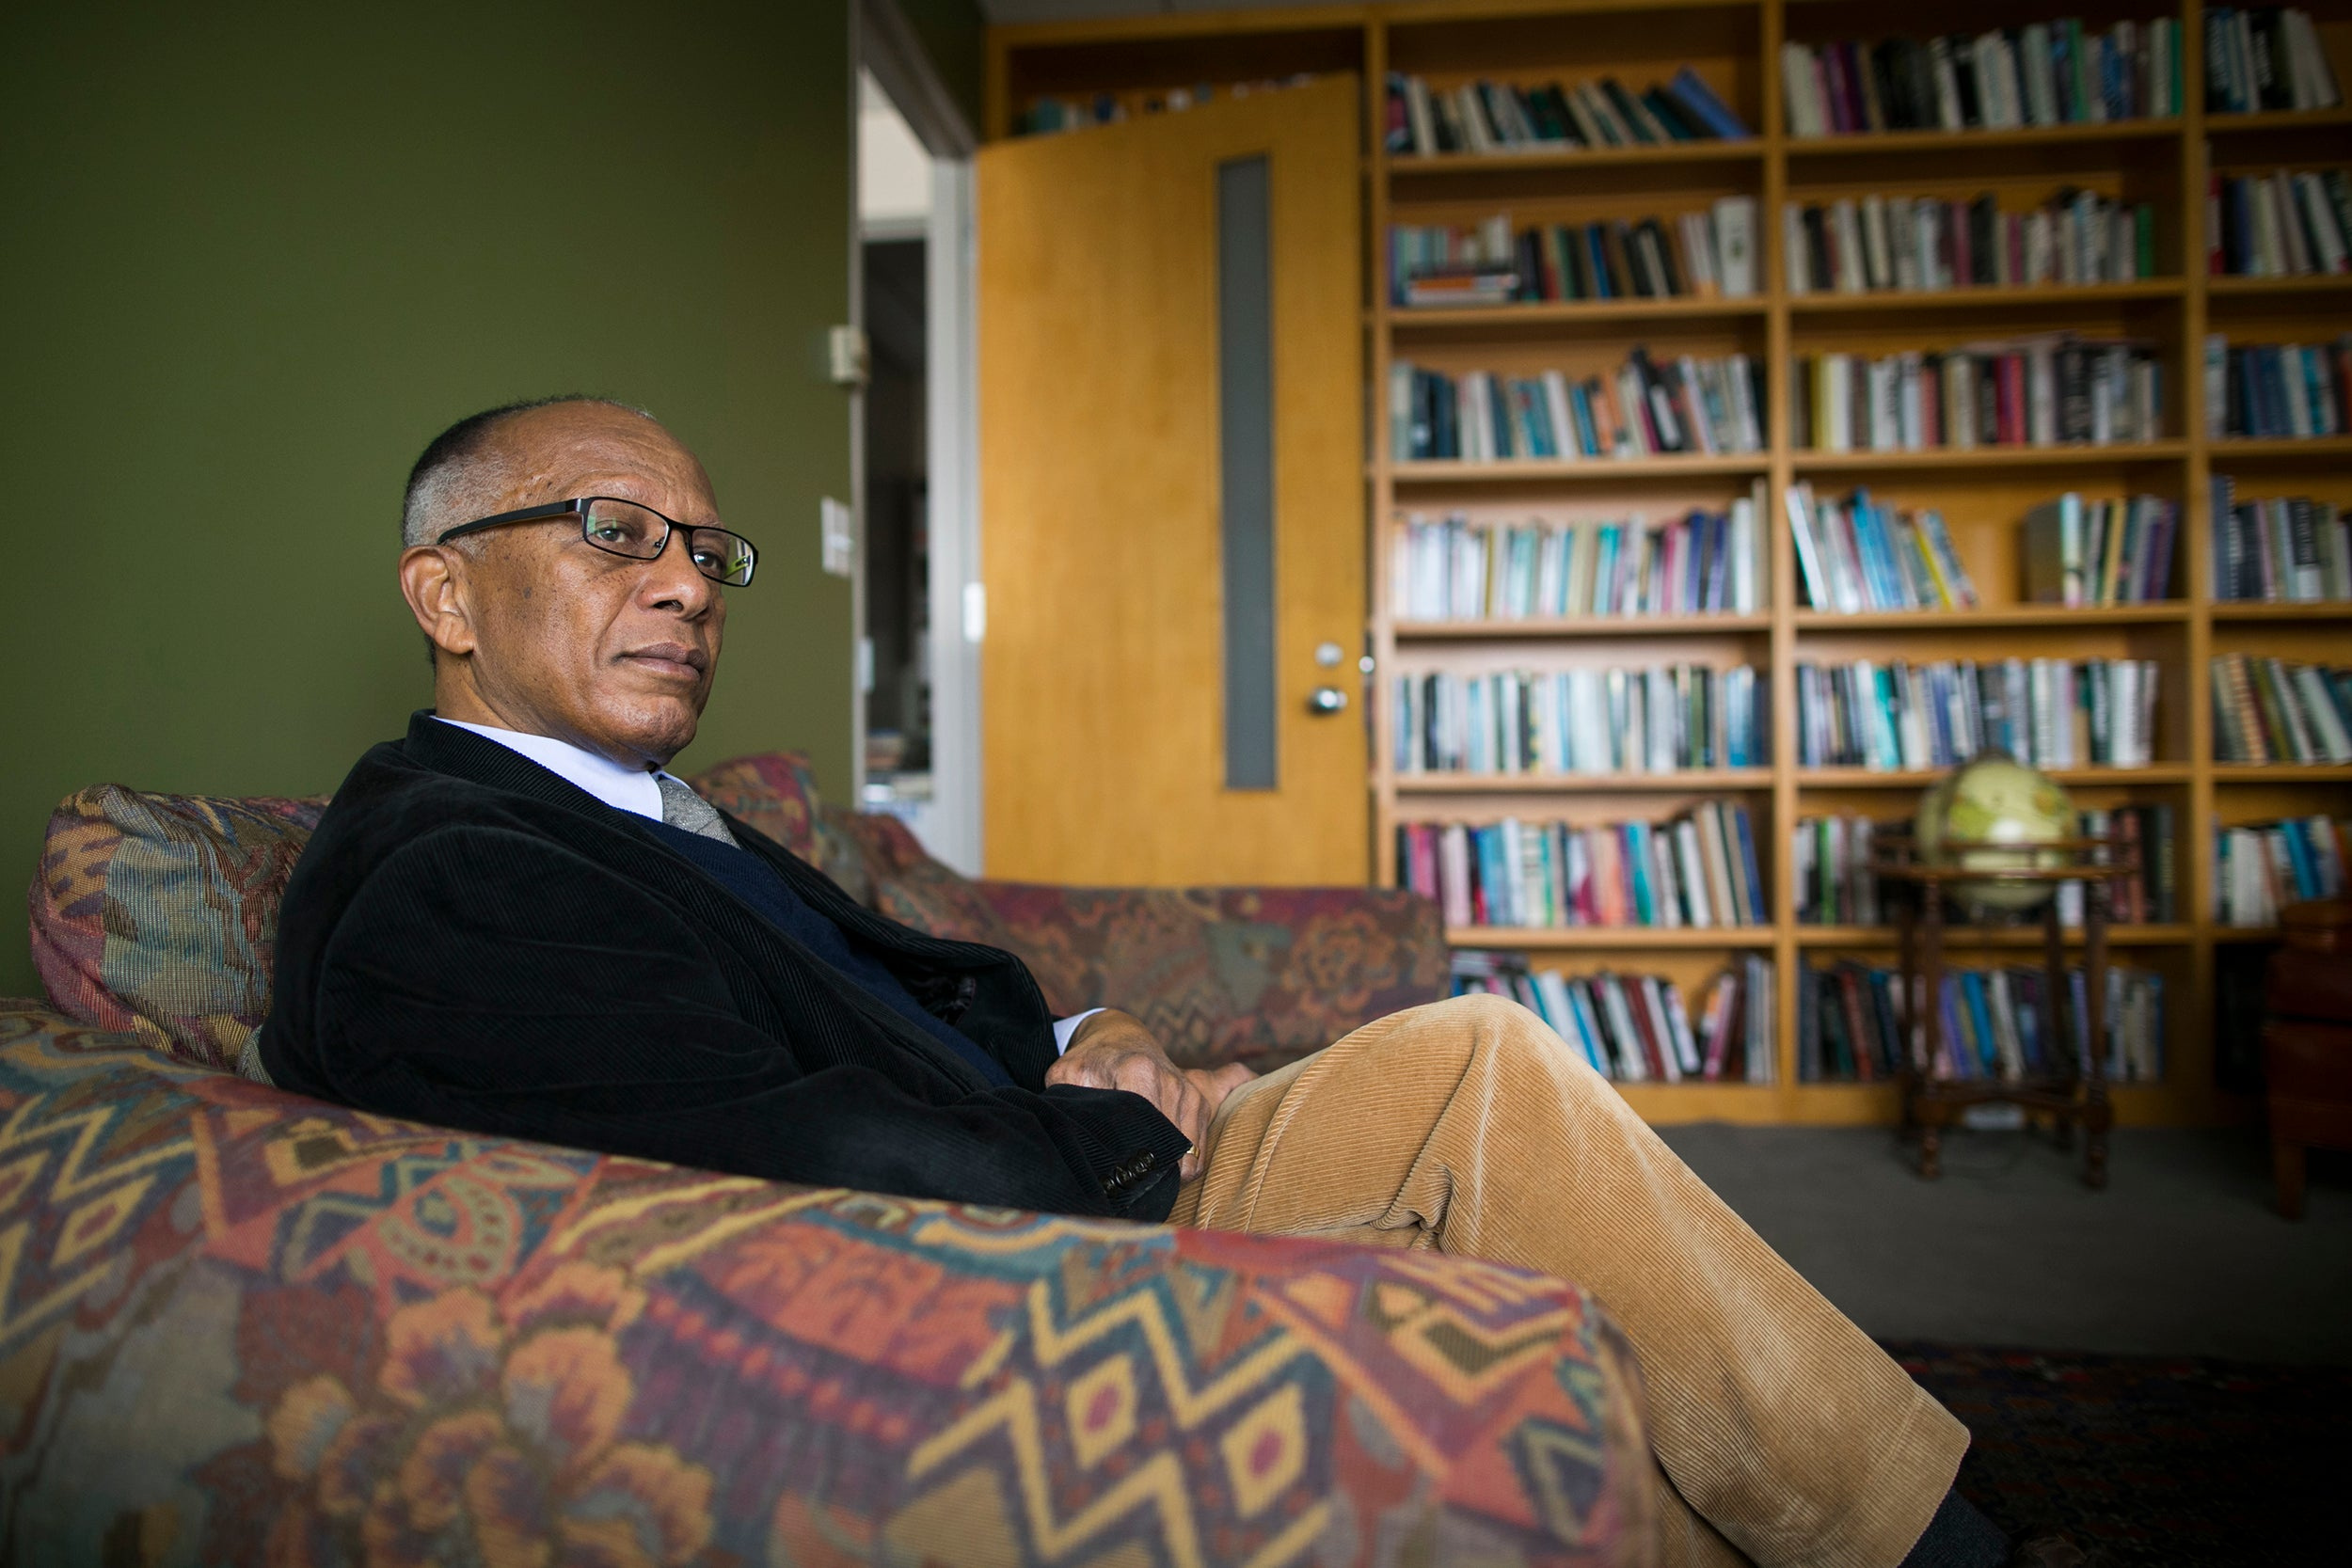 """""""When the [Kerner] report came out, it was a period of turmoil ... people felt that civilization was on the brink of collapse,"""" said Orlando Patterson. """"In a way, what is happening now is similar to what happened then. And like in the past, the right and the left are at loggerheads about which direction to take."""""""